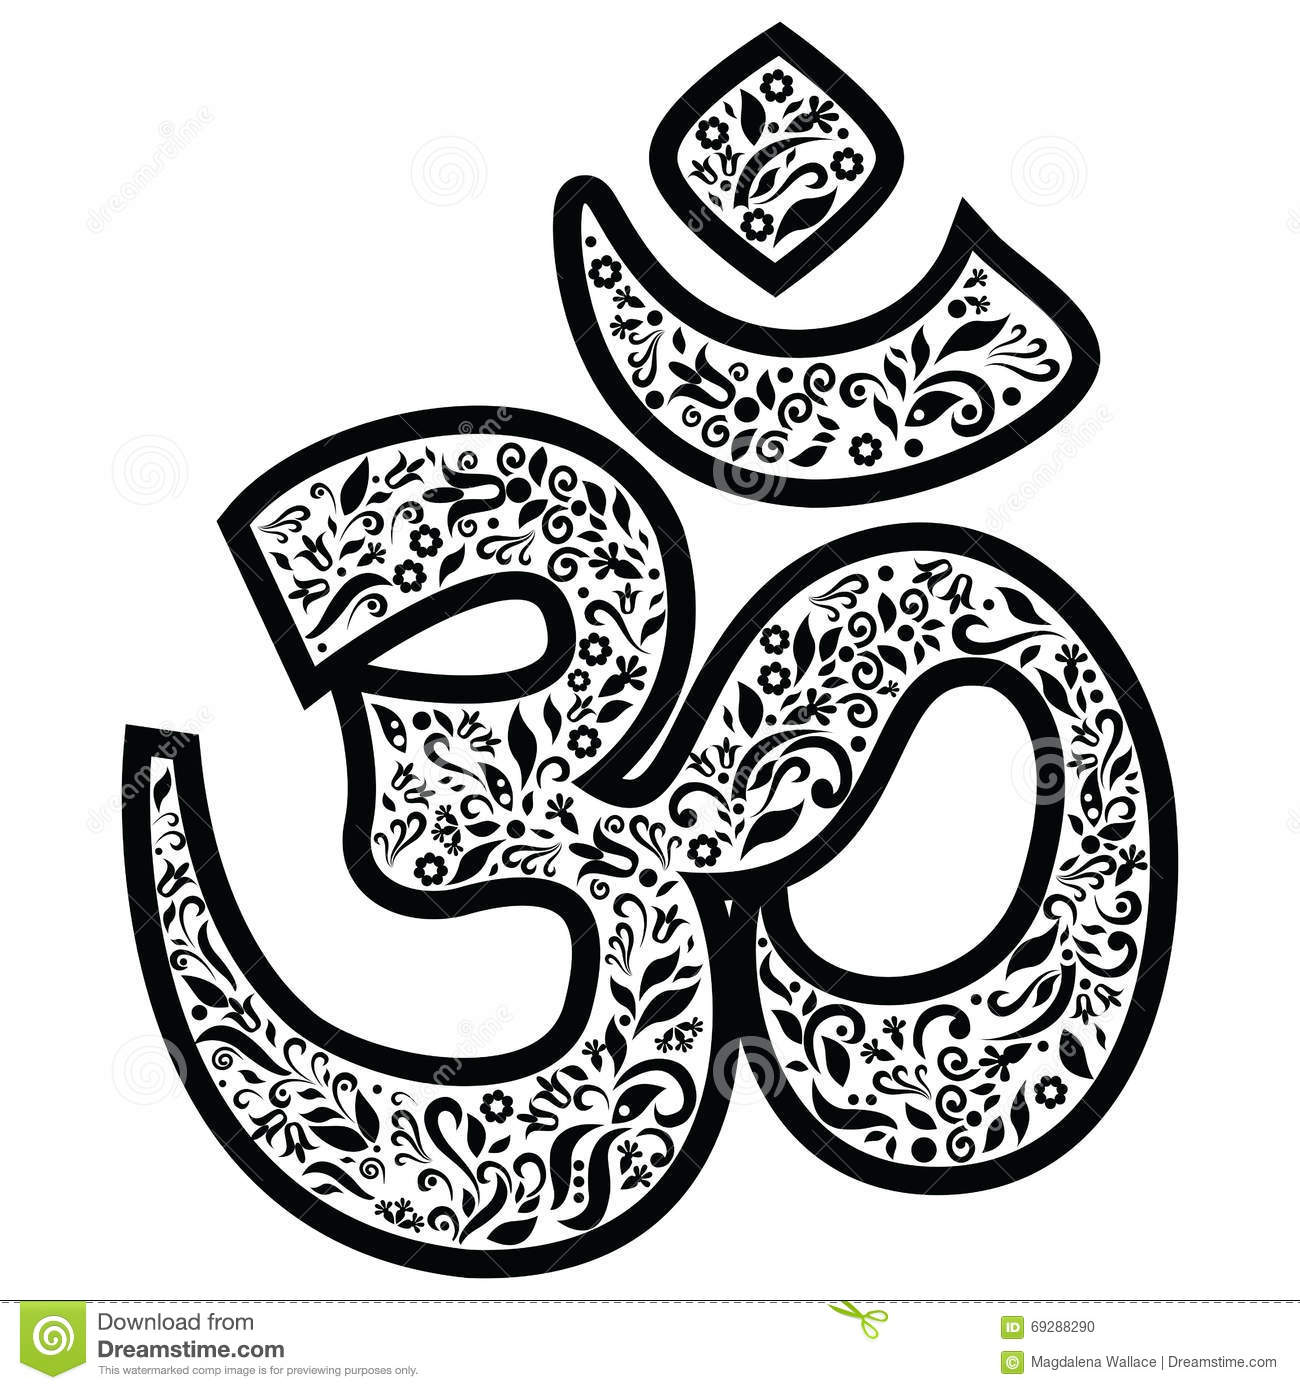 Om Sign Representing God Creation And The Oneness Of All